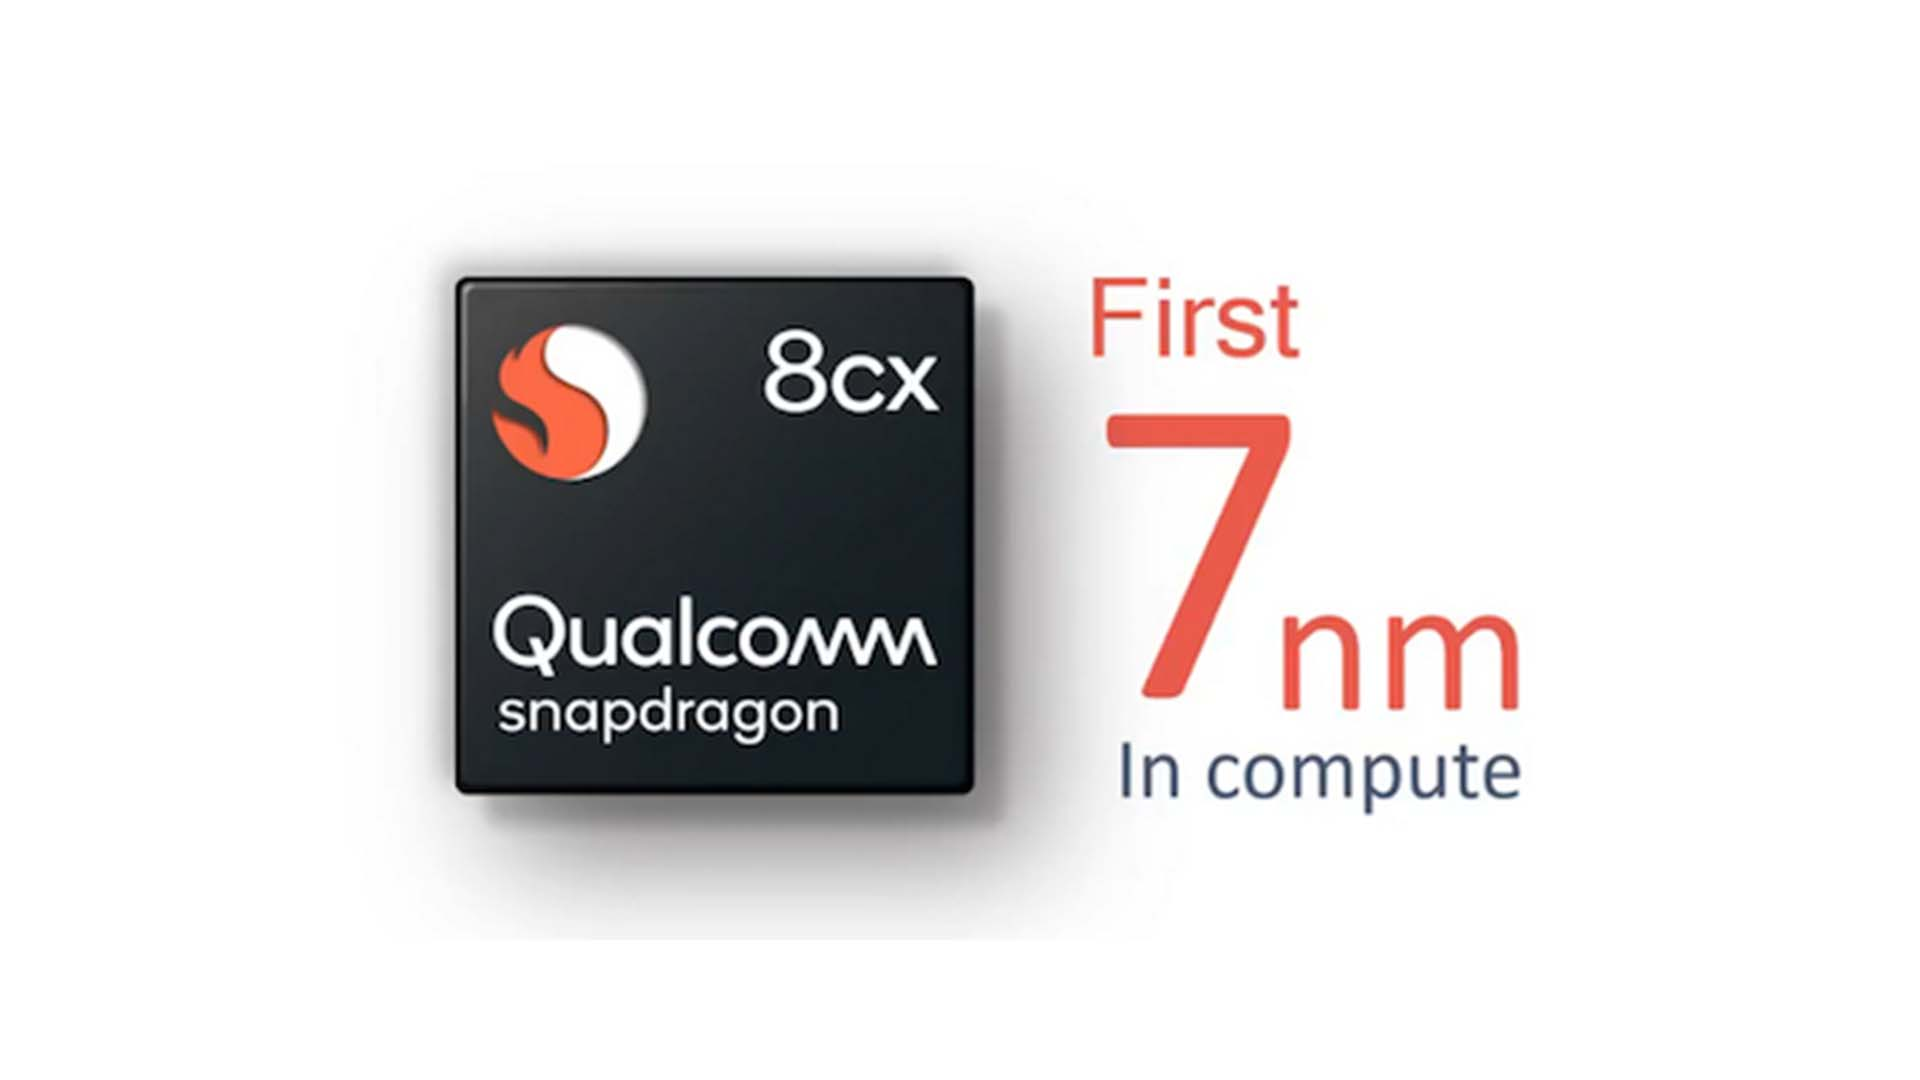 支援 Windows 10 Enterprise 是亮點,Qualcomm Snapdragon 8cx 採用 7nm 製程